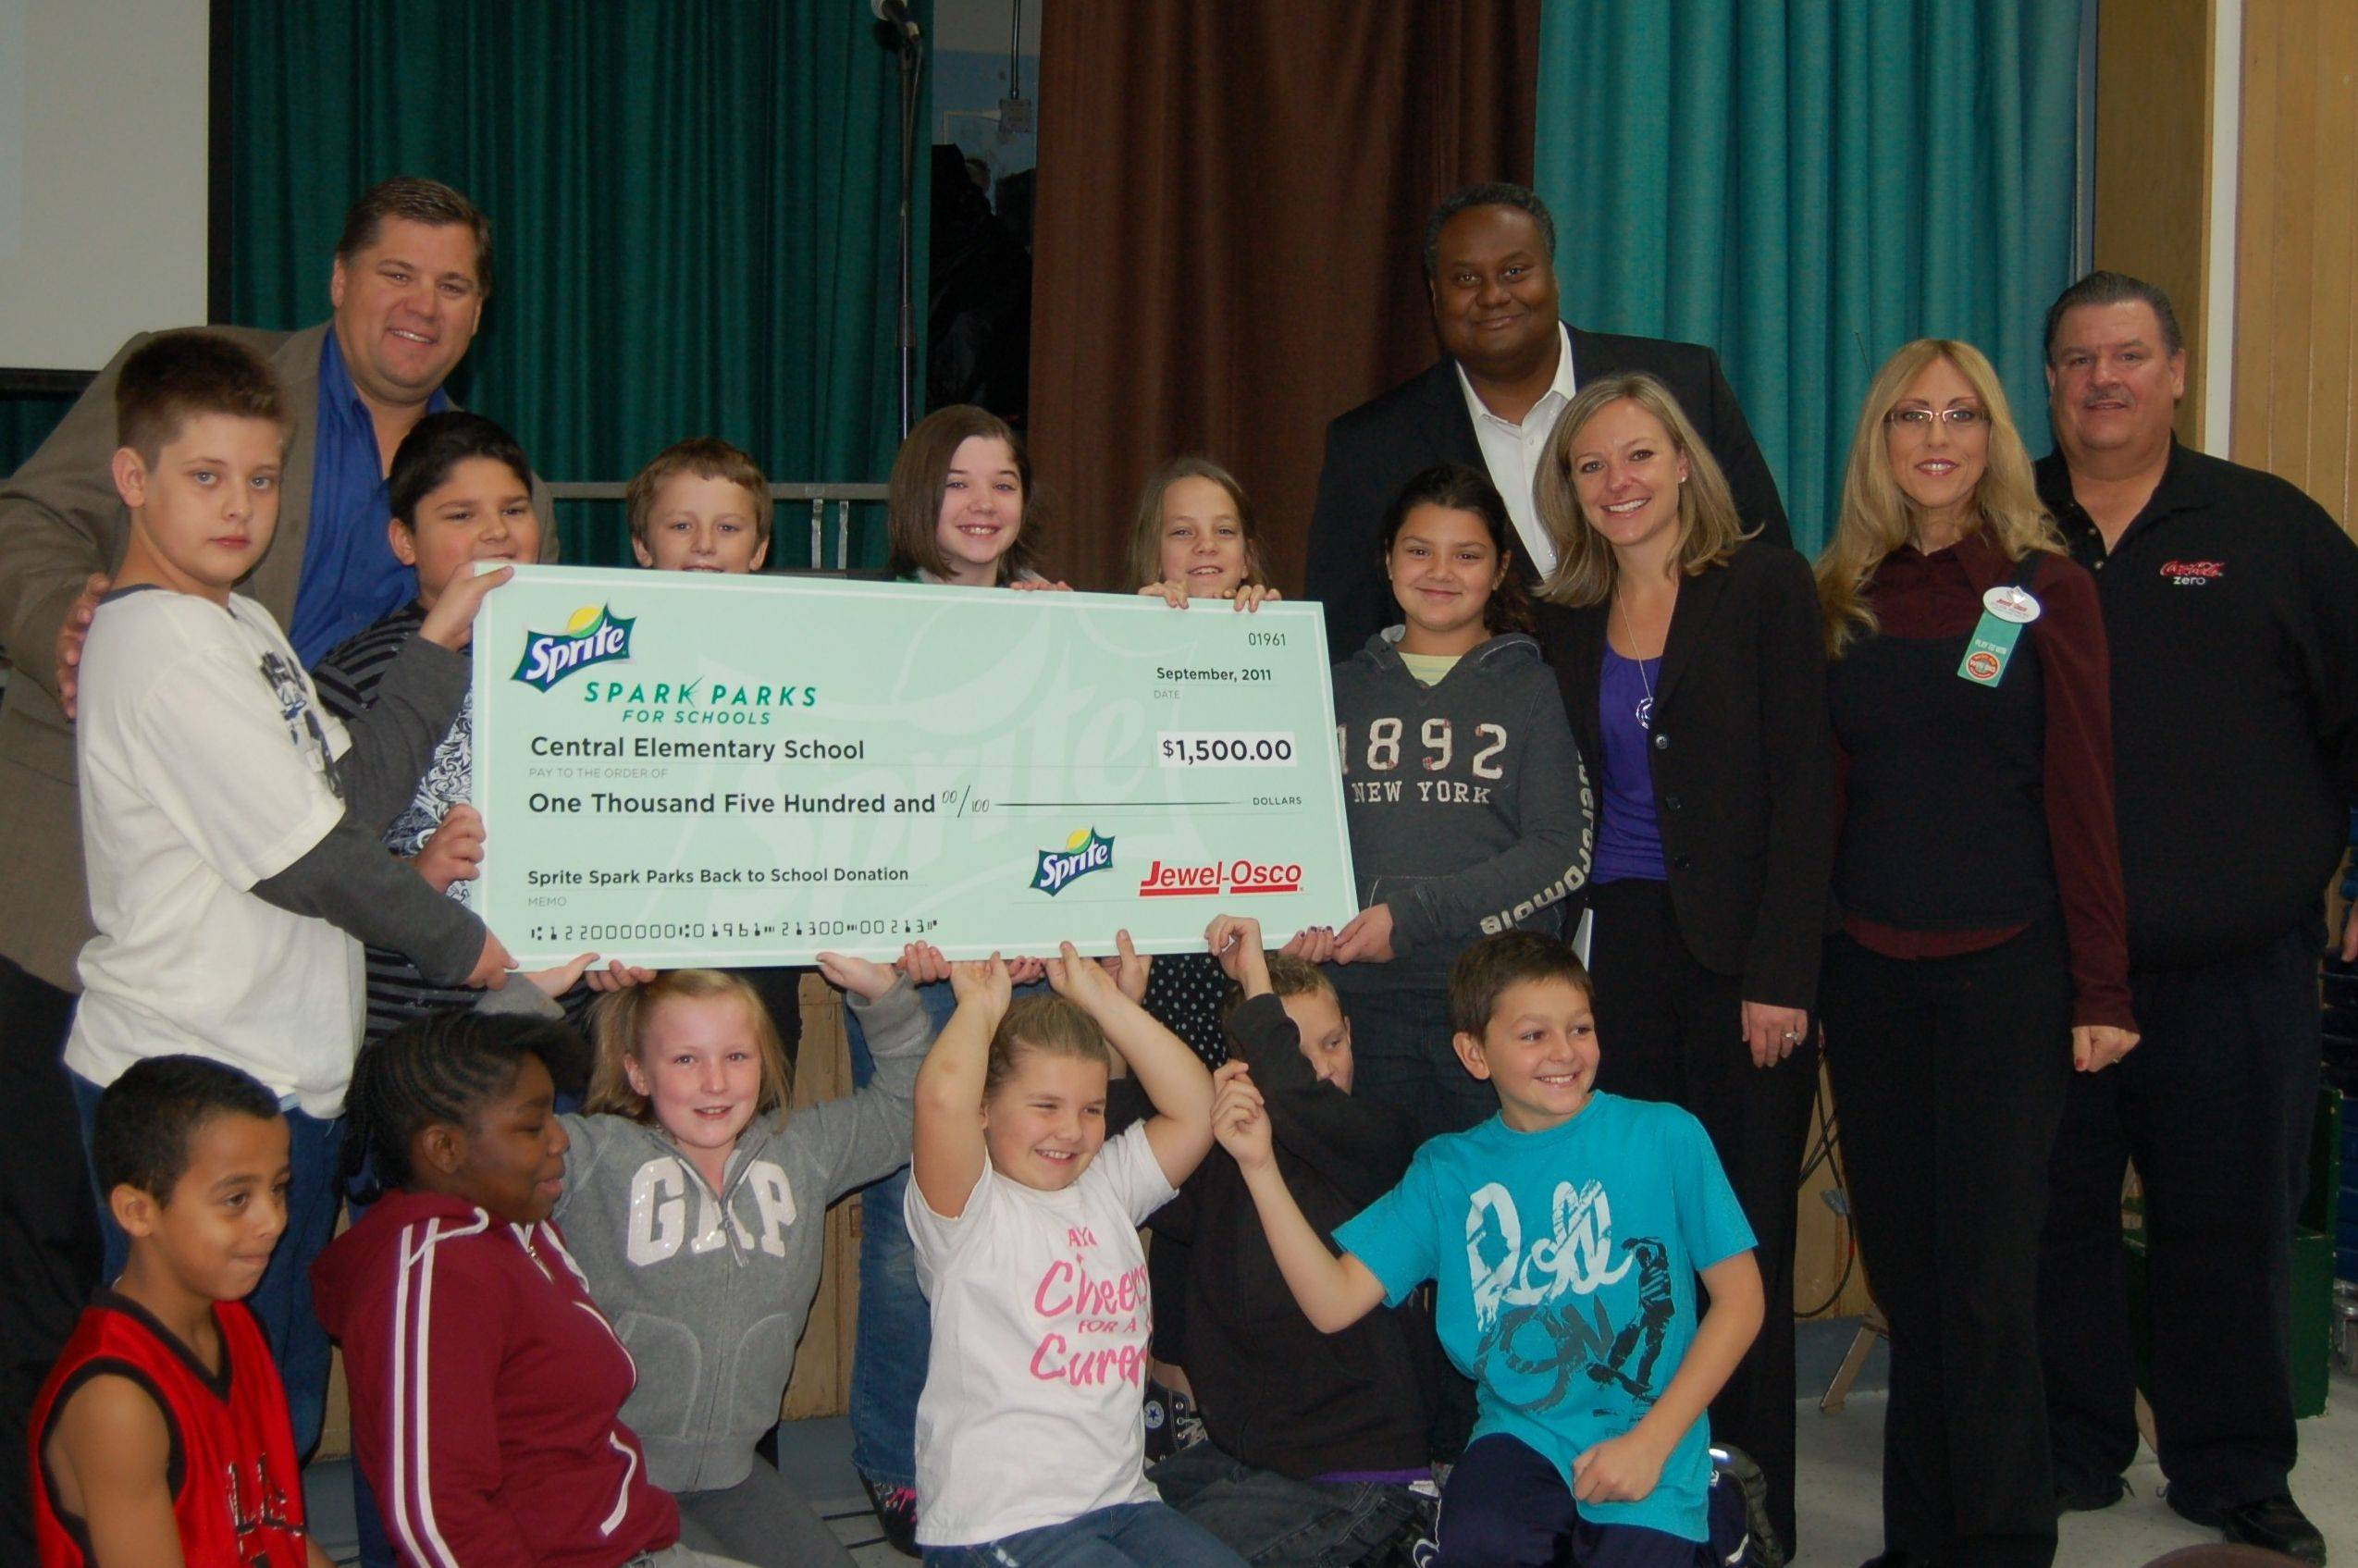 Jewel-Osco representatives Phil Alcot and Sylvia Reinoce joined Coke representatives Jason Cunningham and Dave Lesiak to present Central Principal Kelly Krueger and fourth- and fifth-grade student council members a $1,500 check as part of the Sprite Spark Parks Project for Schools program.